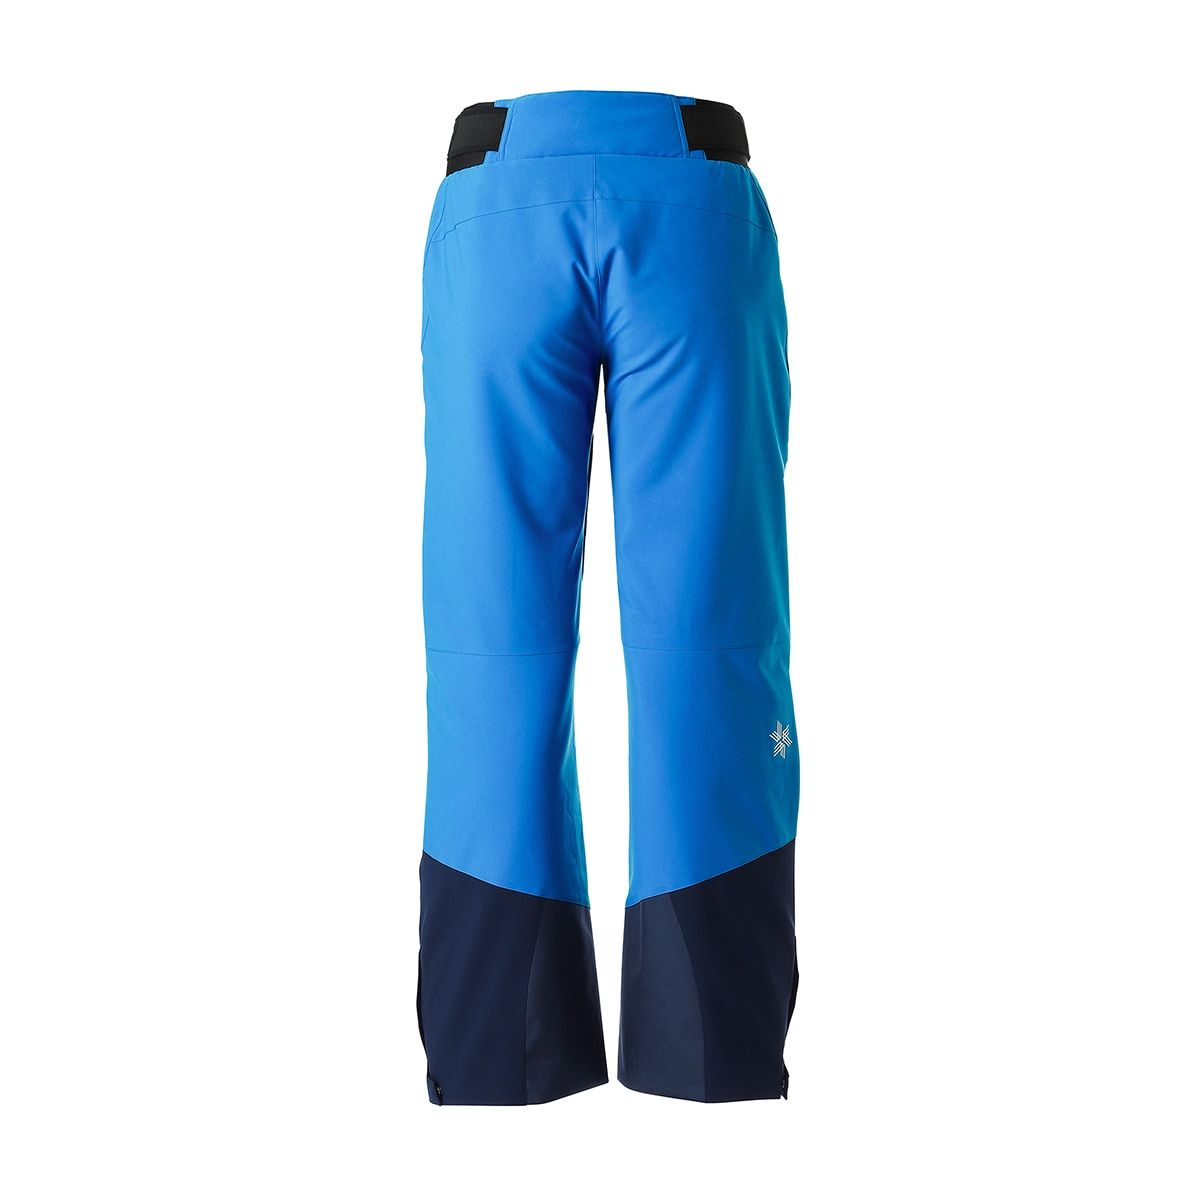 BARO 2-TONE COLOR PANTS